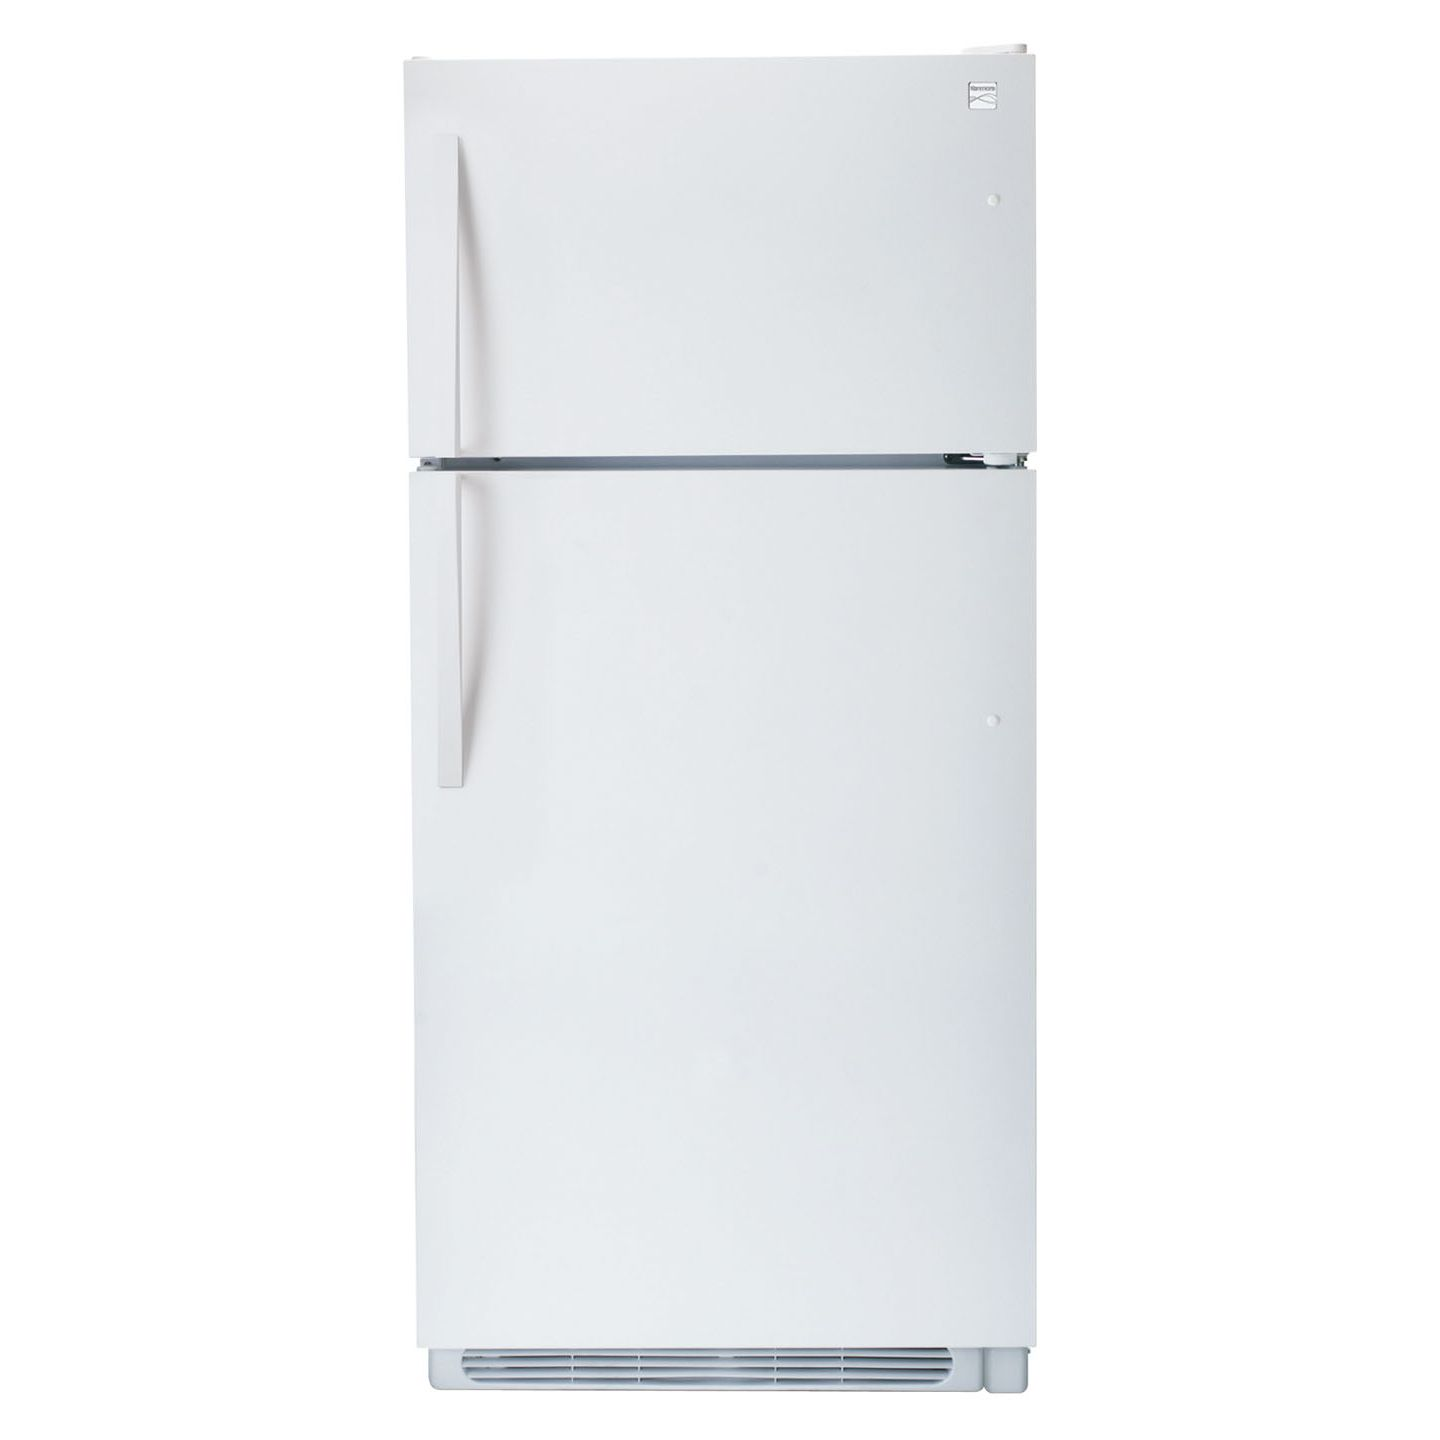 A Kenmore refrigerator in a good condition